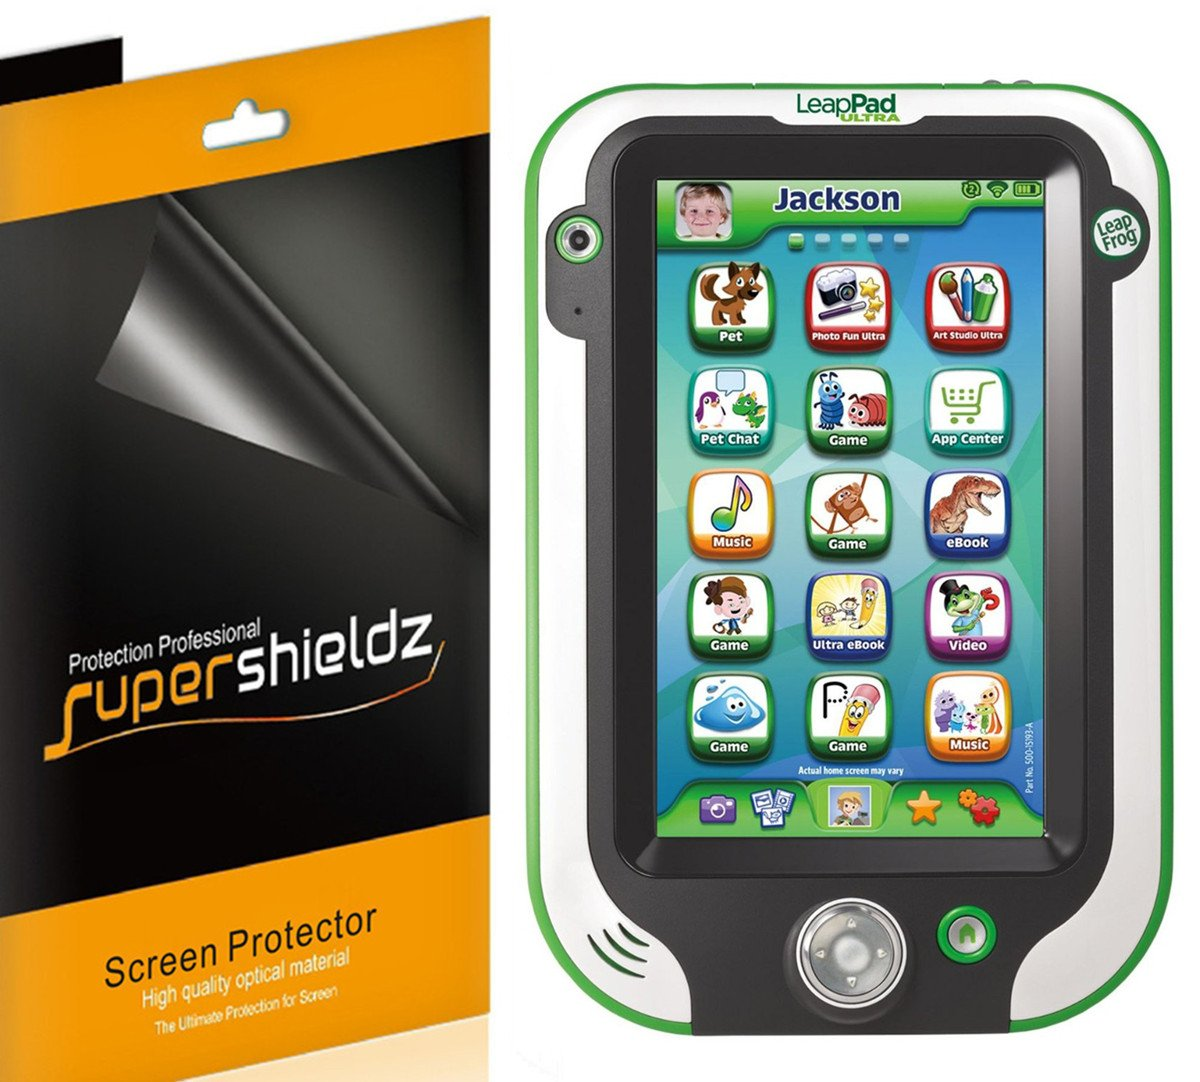 (3 Pack) Supershieldz for Leapfrog Leappad Ultra 7 inch Screen Protector, High Definition Clear Shield (PET)